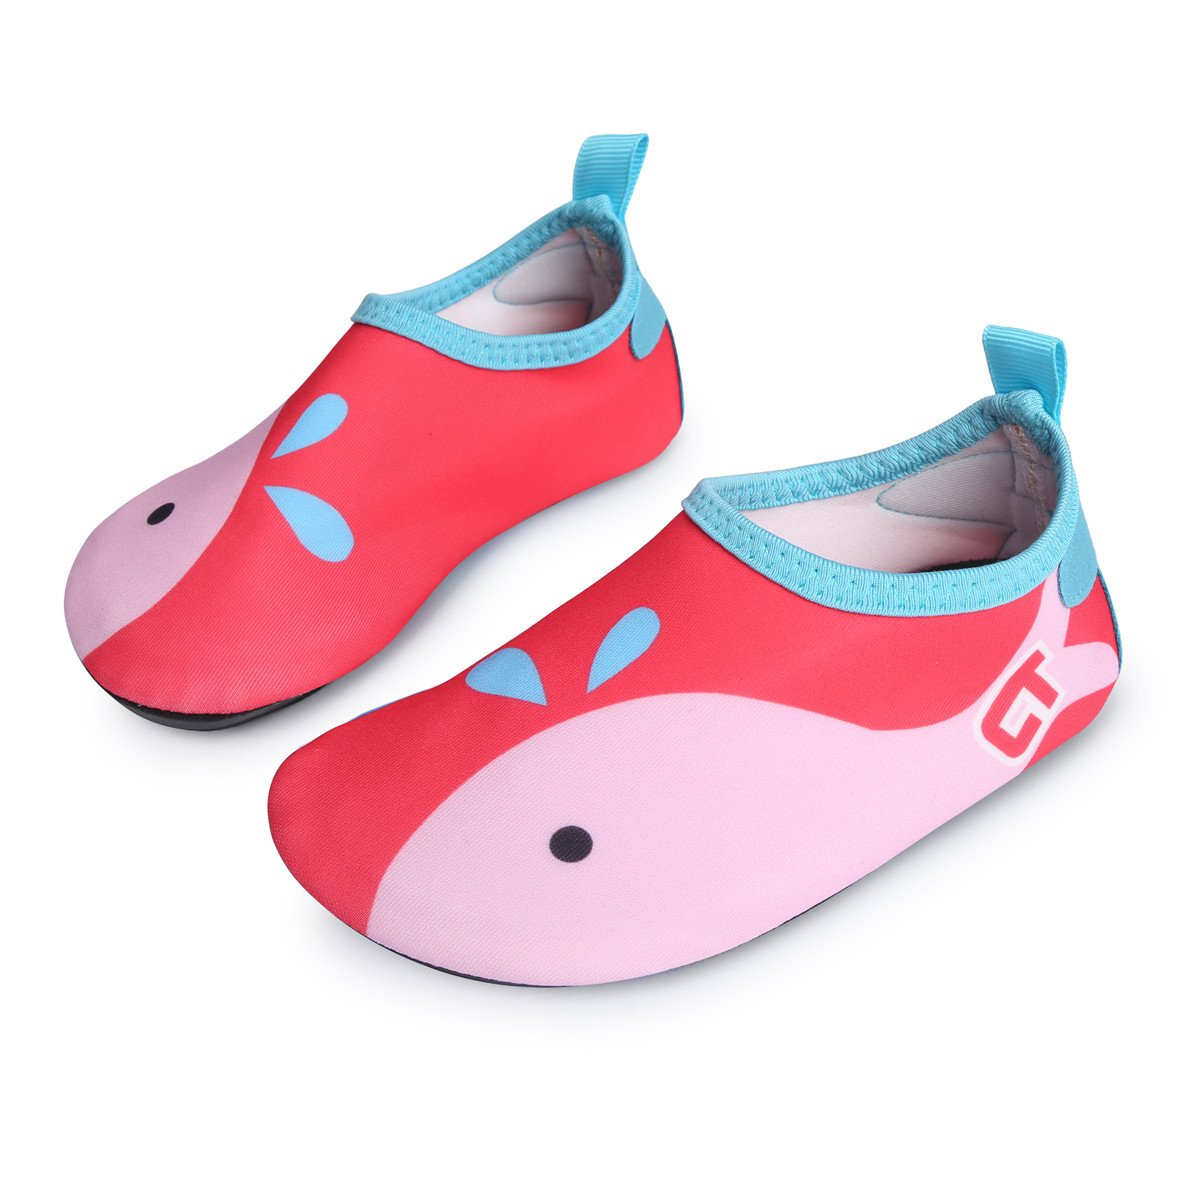 L-RUN Kids Barefoot Water Skin Shoes Boys Girls Aqua Socks for Beach Swim Surf Yoga Red 9.5-10=EU 26-27